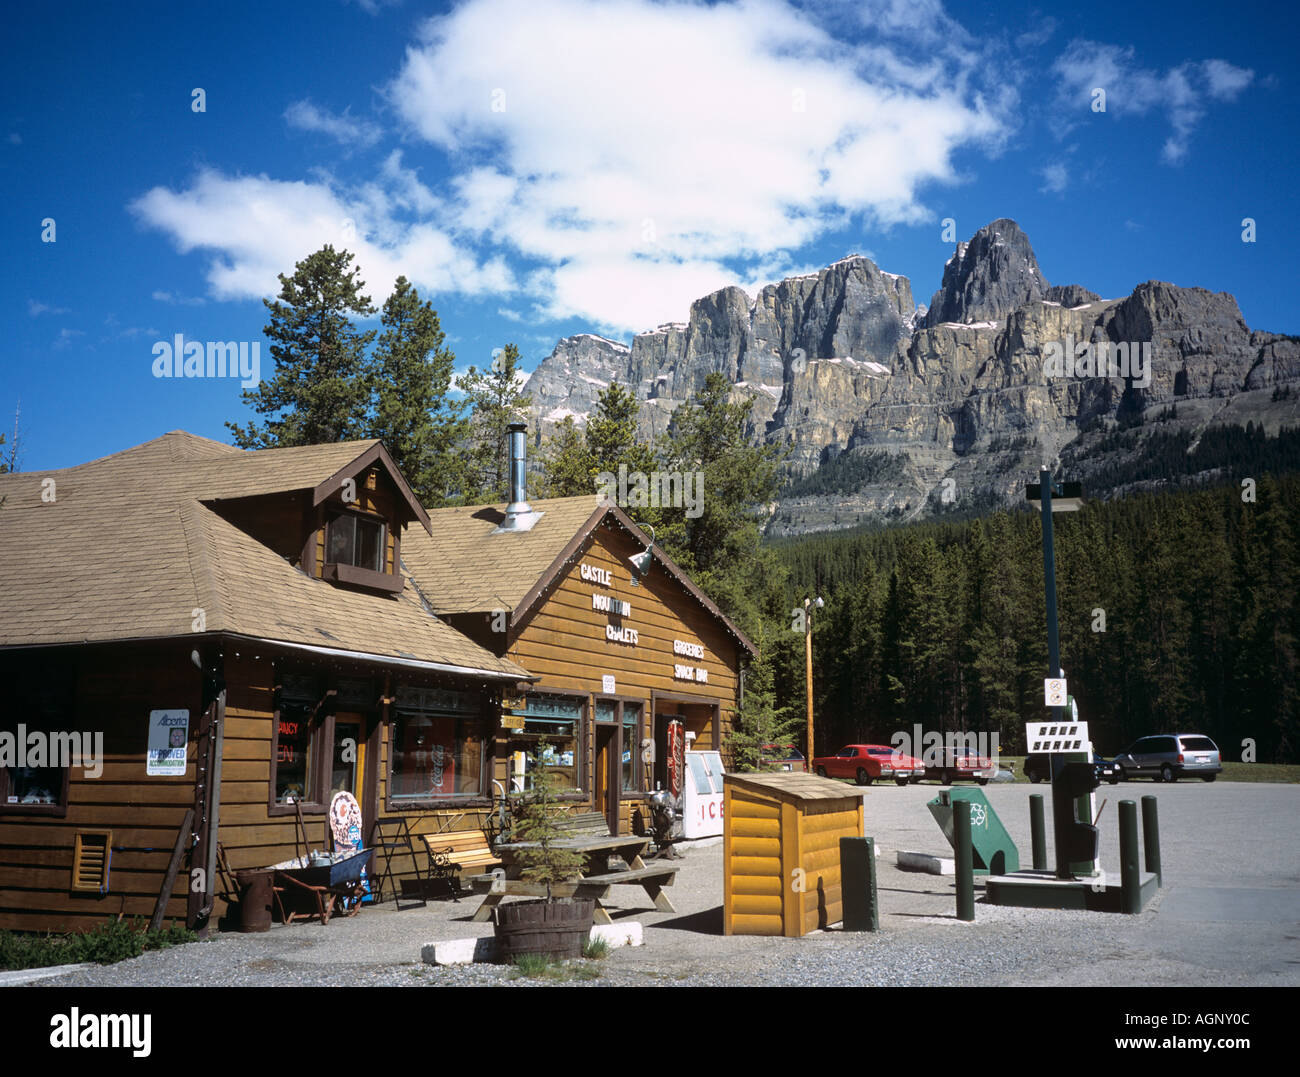 CASTLE MOUNTAIN CHALETS and SHOP Lake Louise Alberta